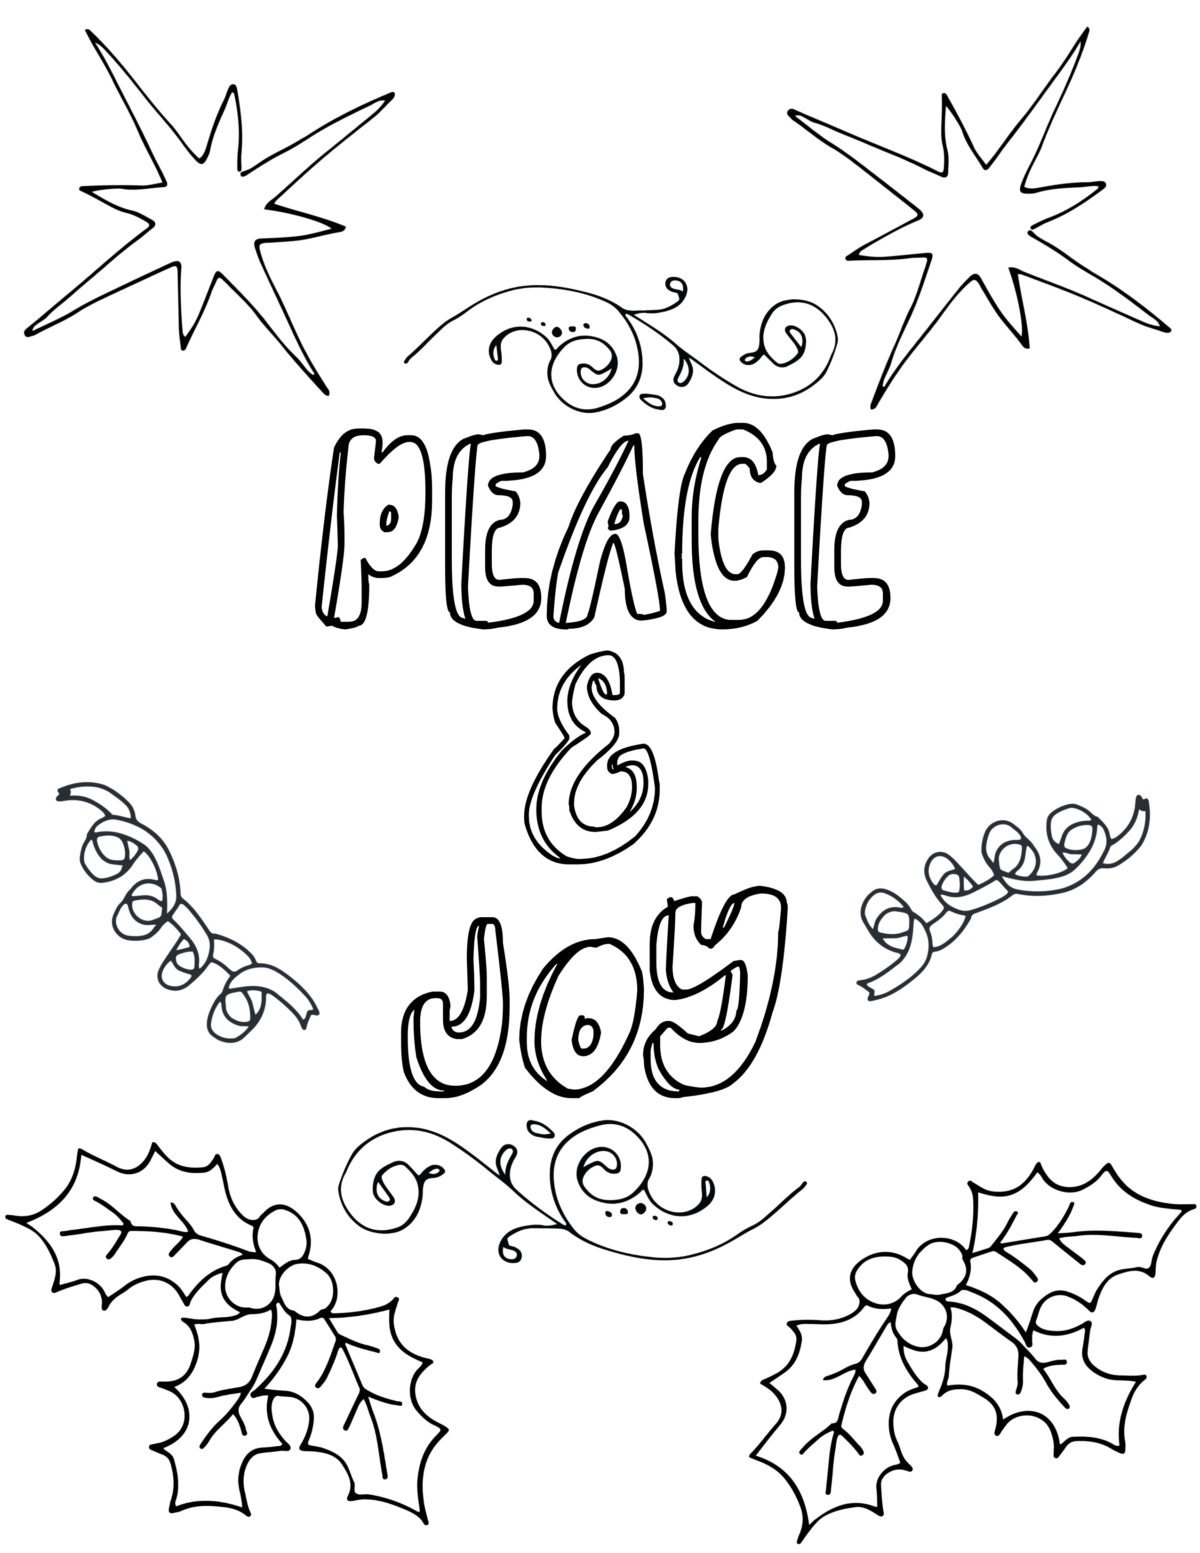 Free Printable Christmas Coloring Pages For Adults | christmas colouring pages for adults